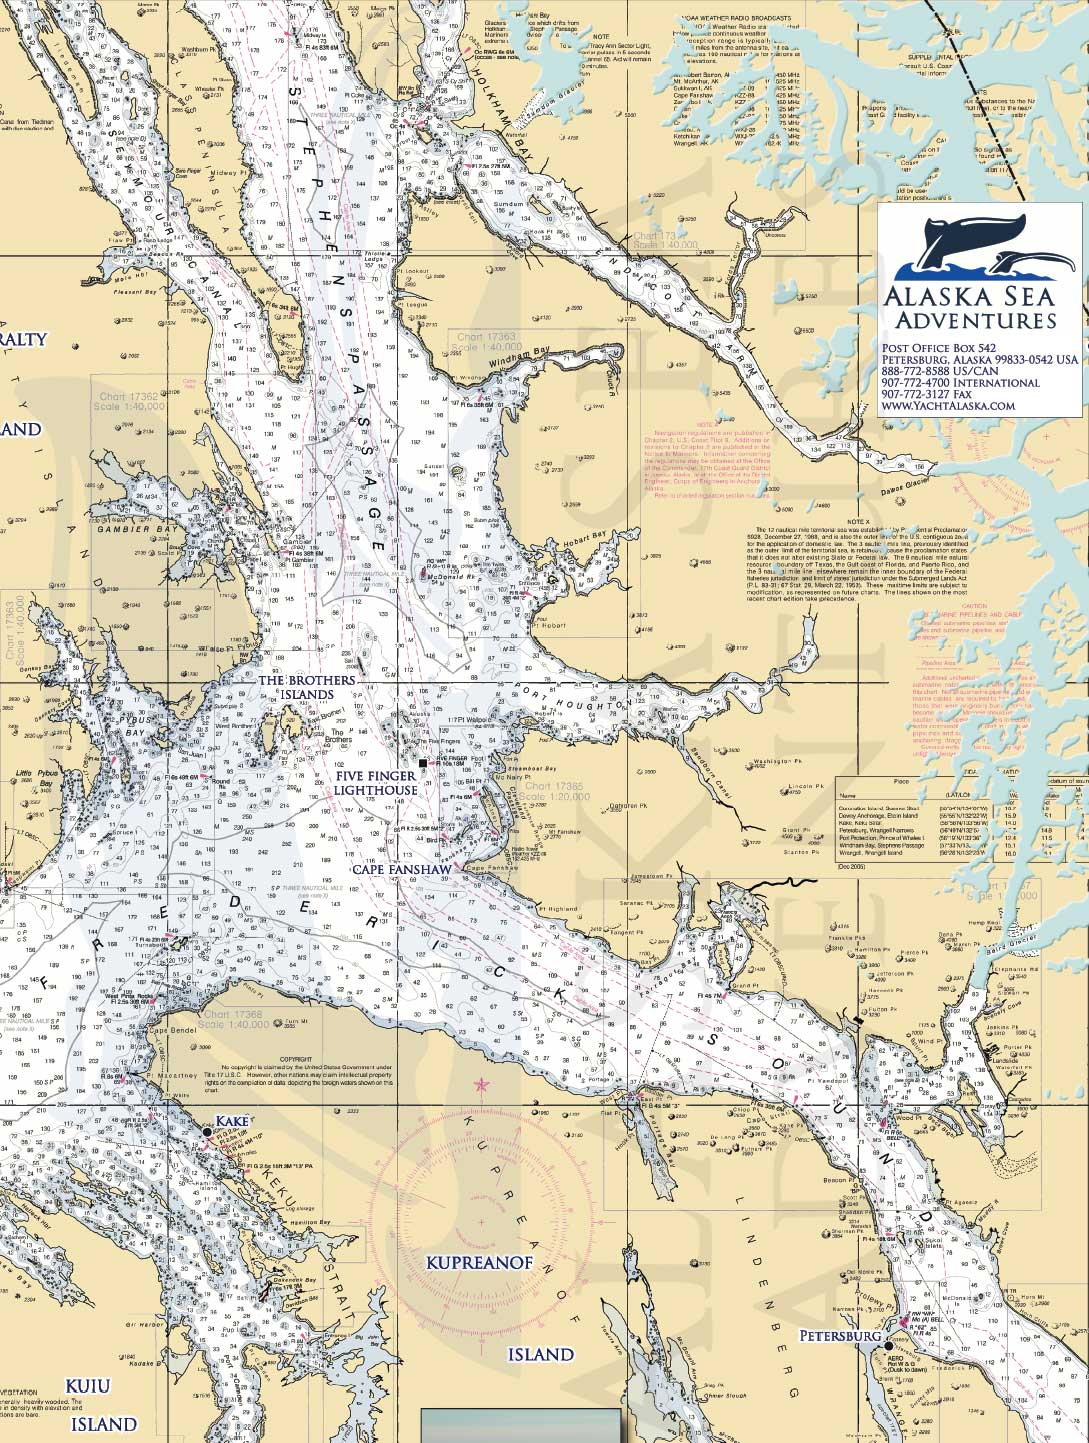 Alaska Sea Adventures SE Alaska Maps - Alaska Sea Adventures